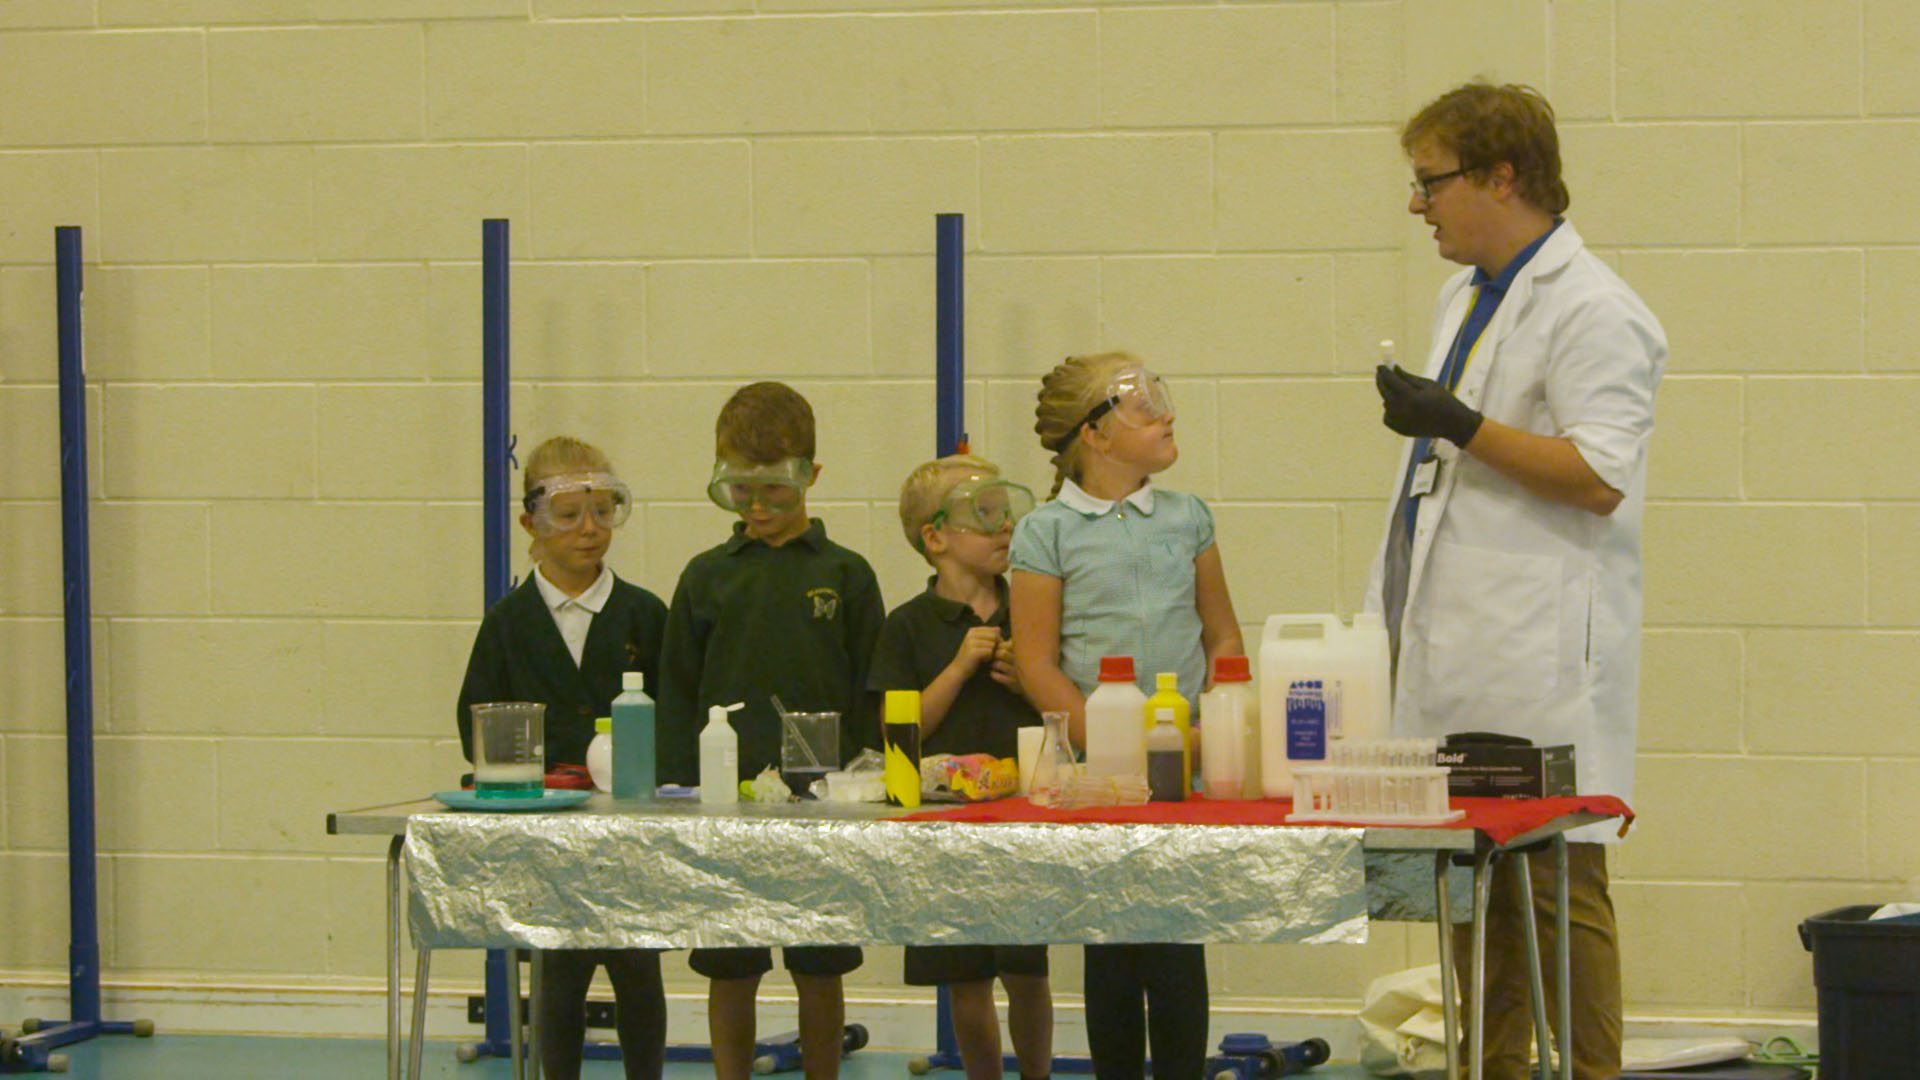 Teacher demonstrating science experiement to children